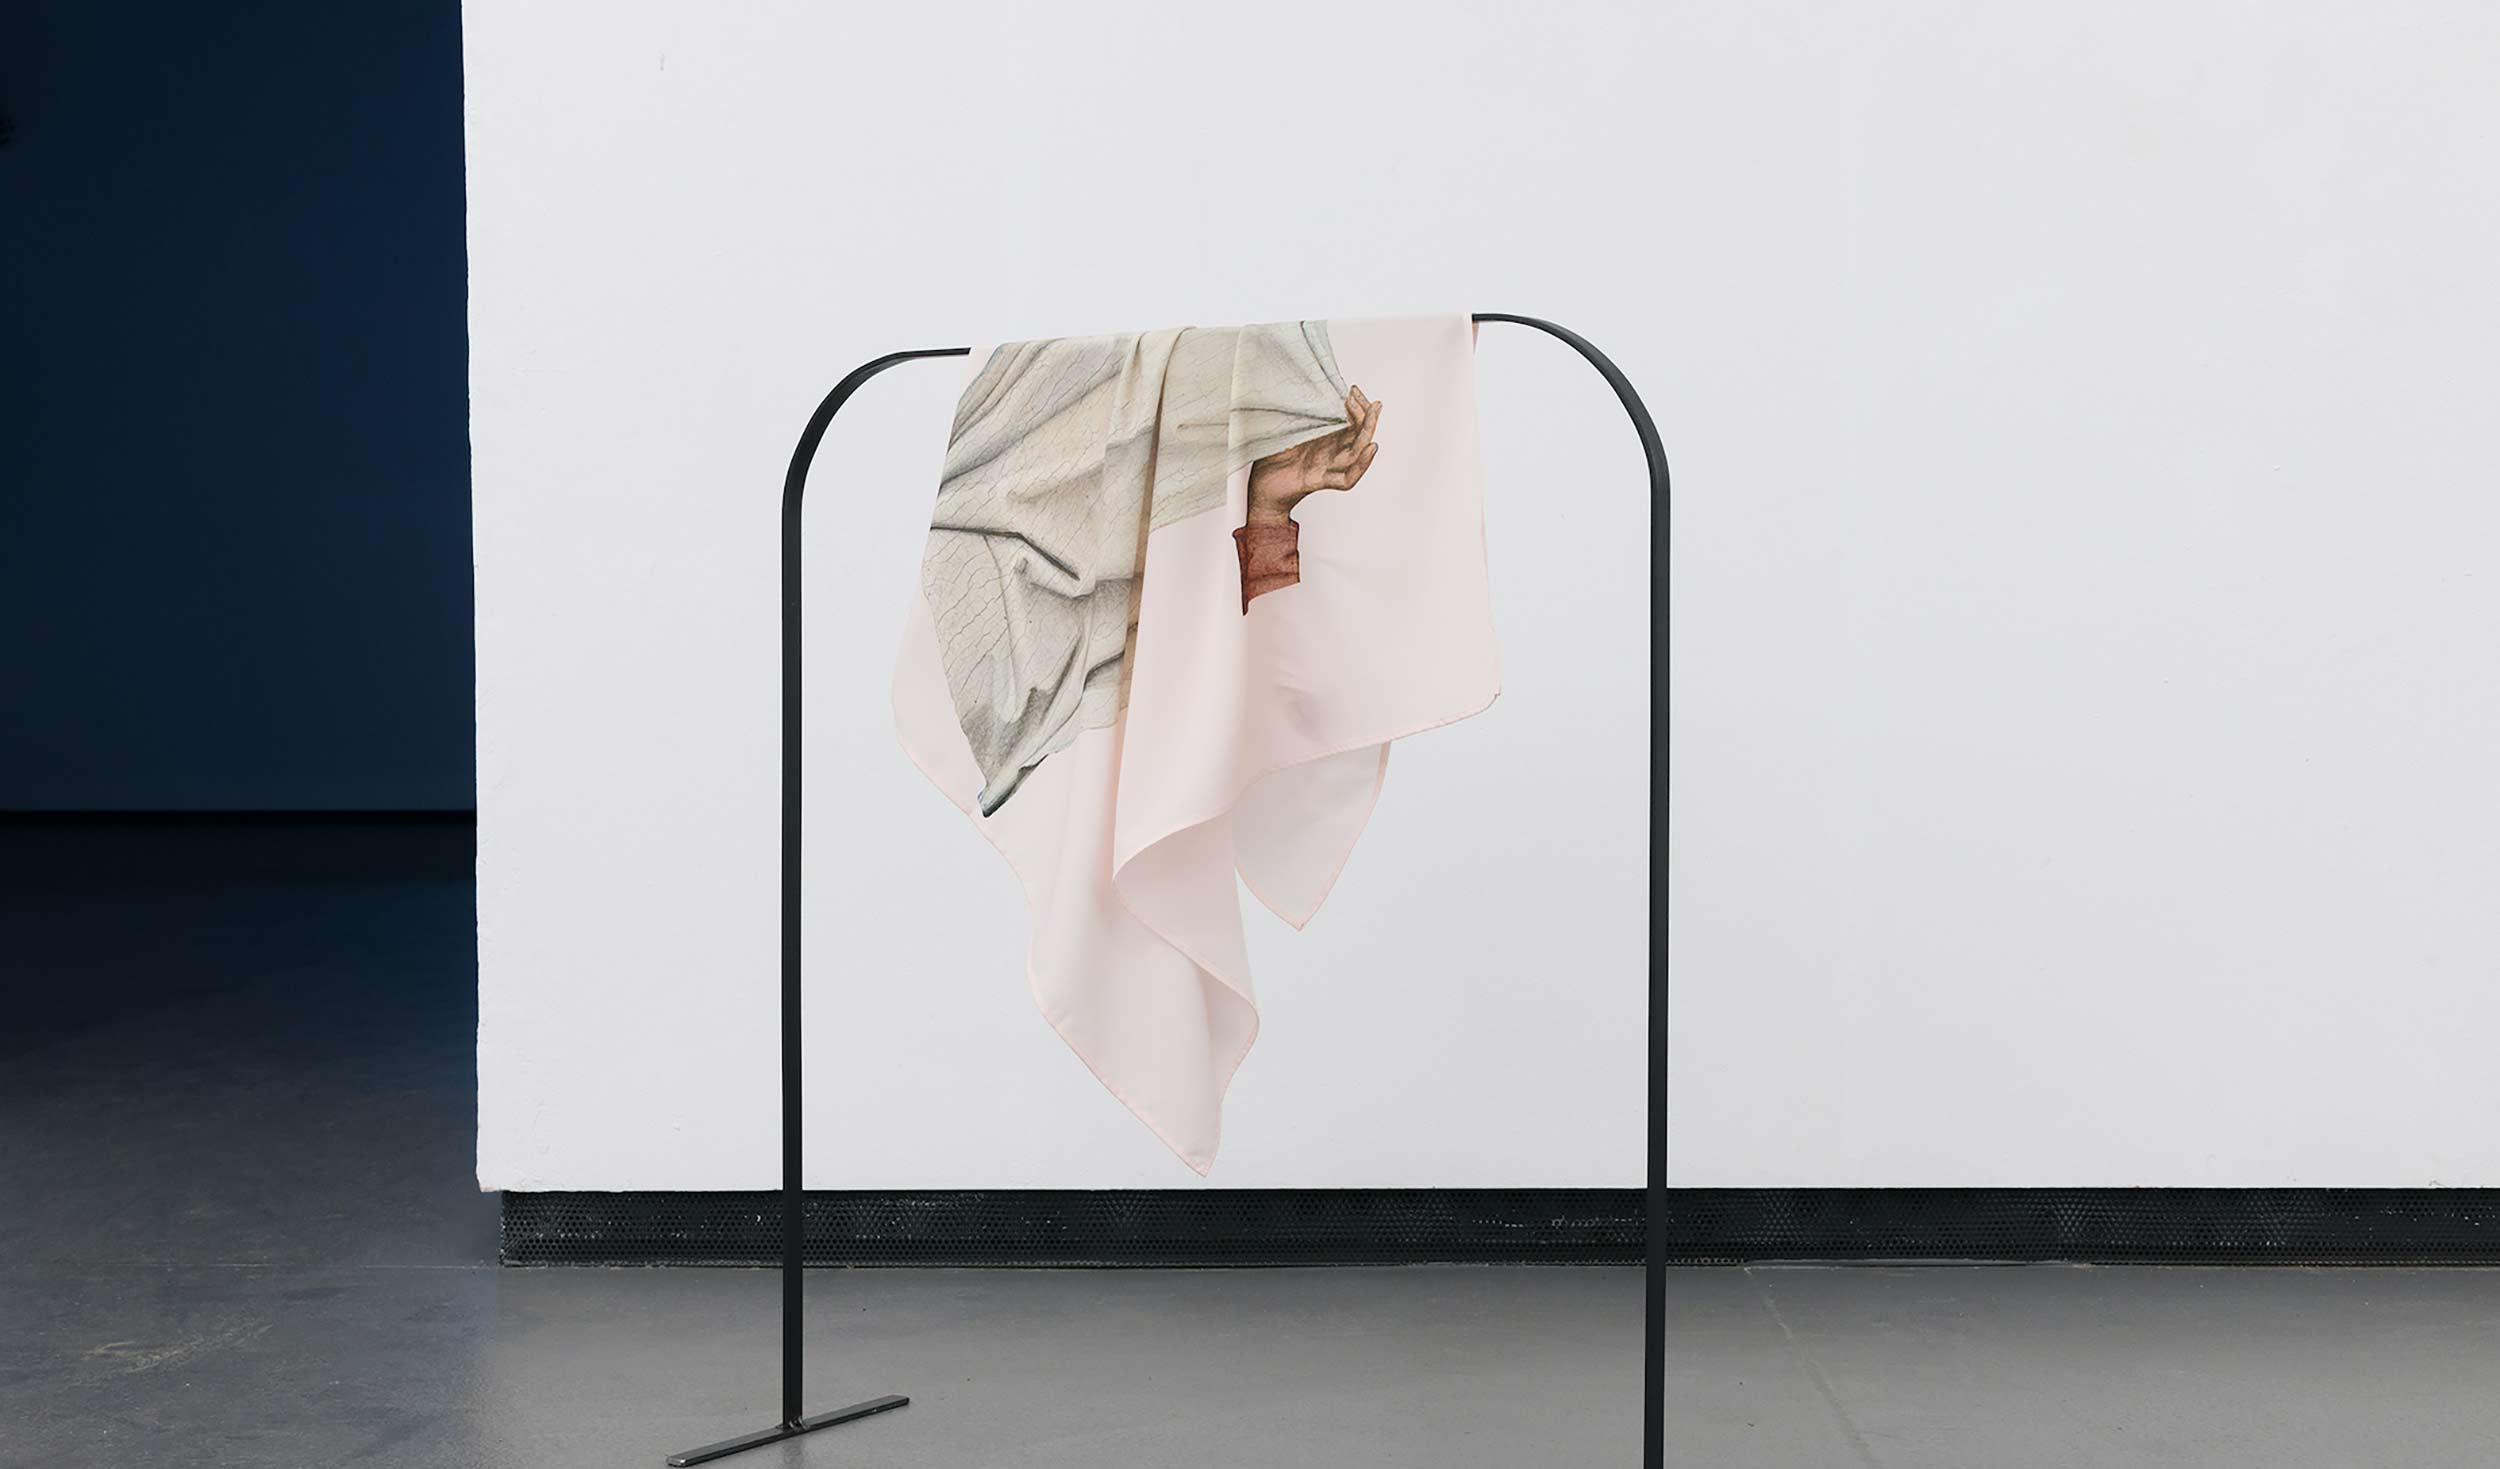 olena newkryta, contemporaryartist, installation, photography, white cube,